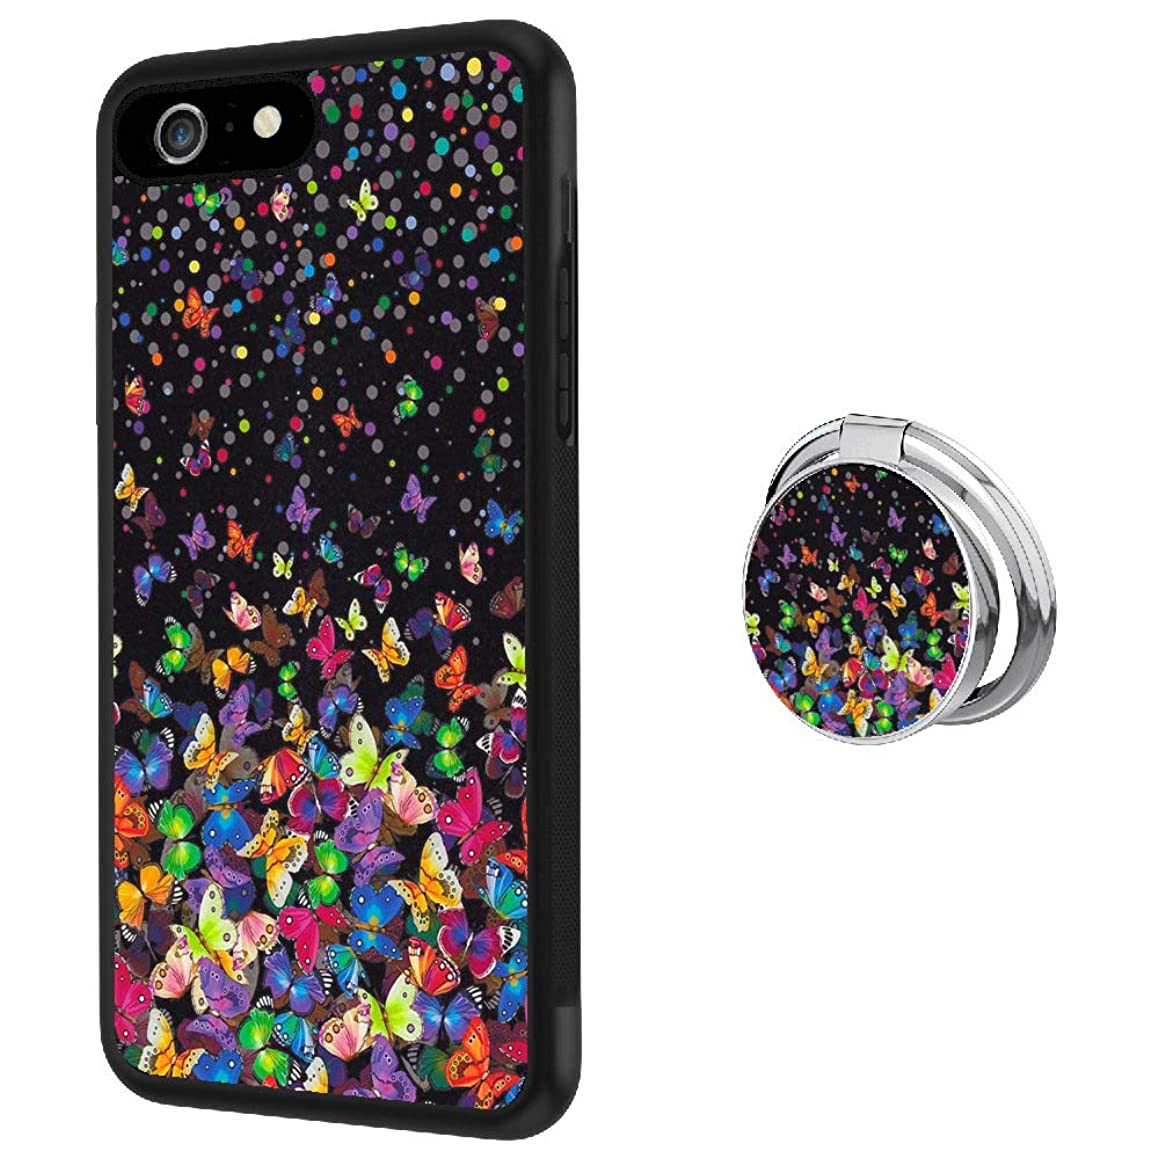 Hynina Phone Case and Phone Ring Buckle Compatible for iPhone 6s 6 - Butterflies